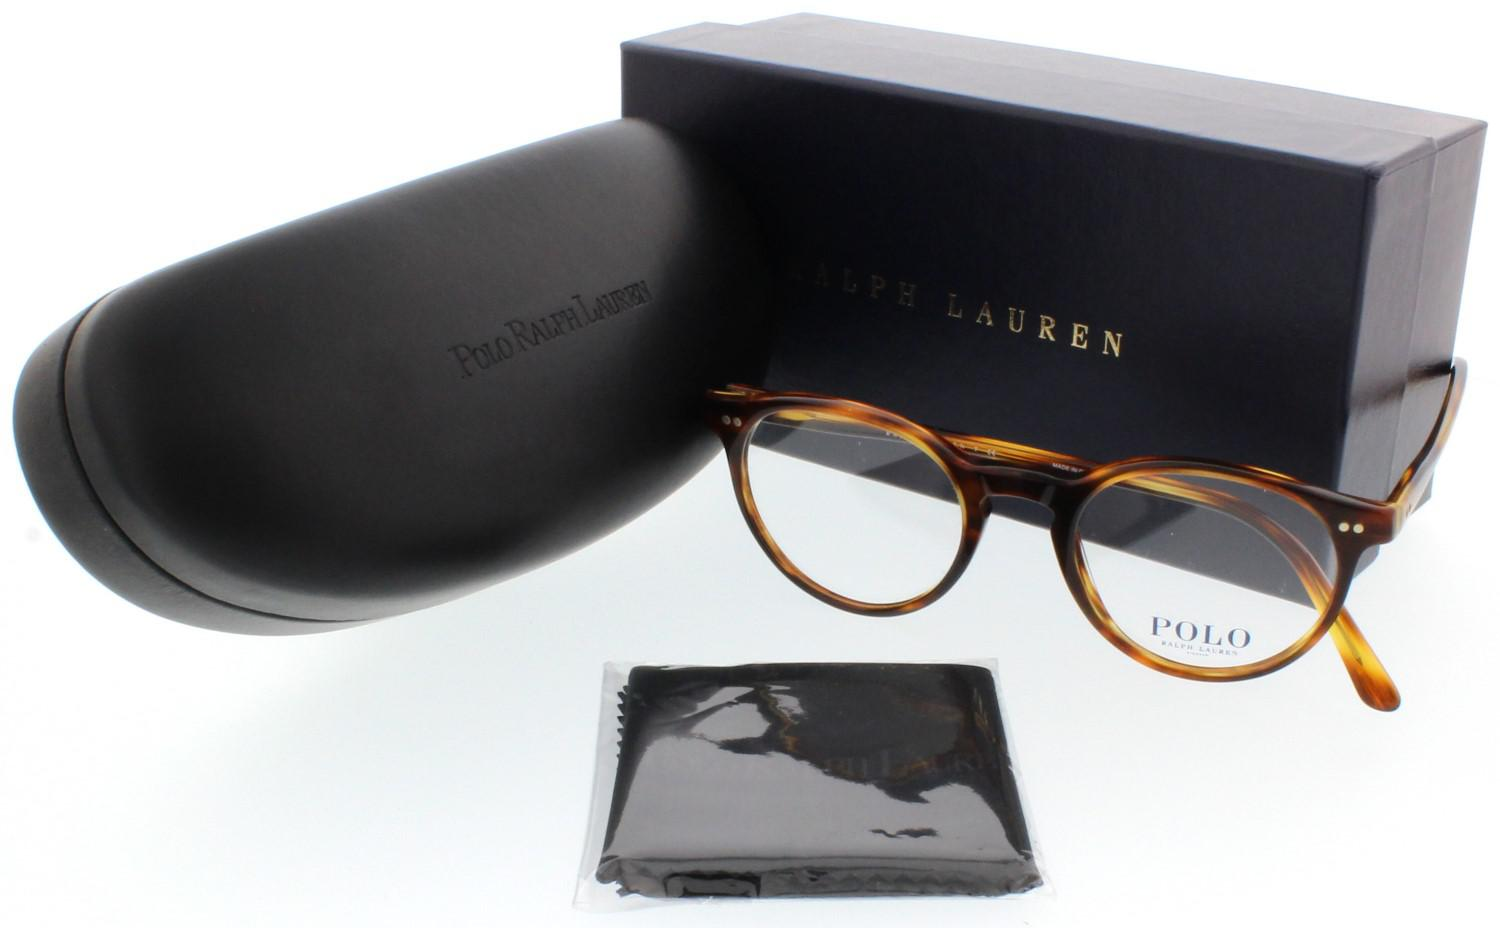 Lyst - Polo Ralph Lauren Eyeglasses Polo Ph 2083 5007 Havana Striped ... 00824a0e3e